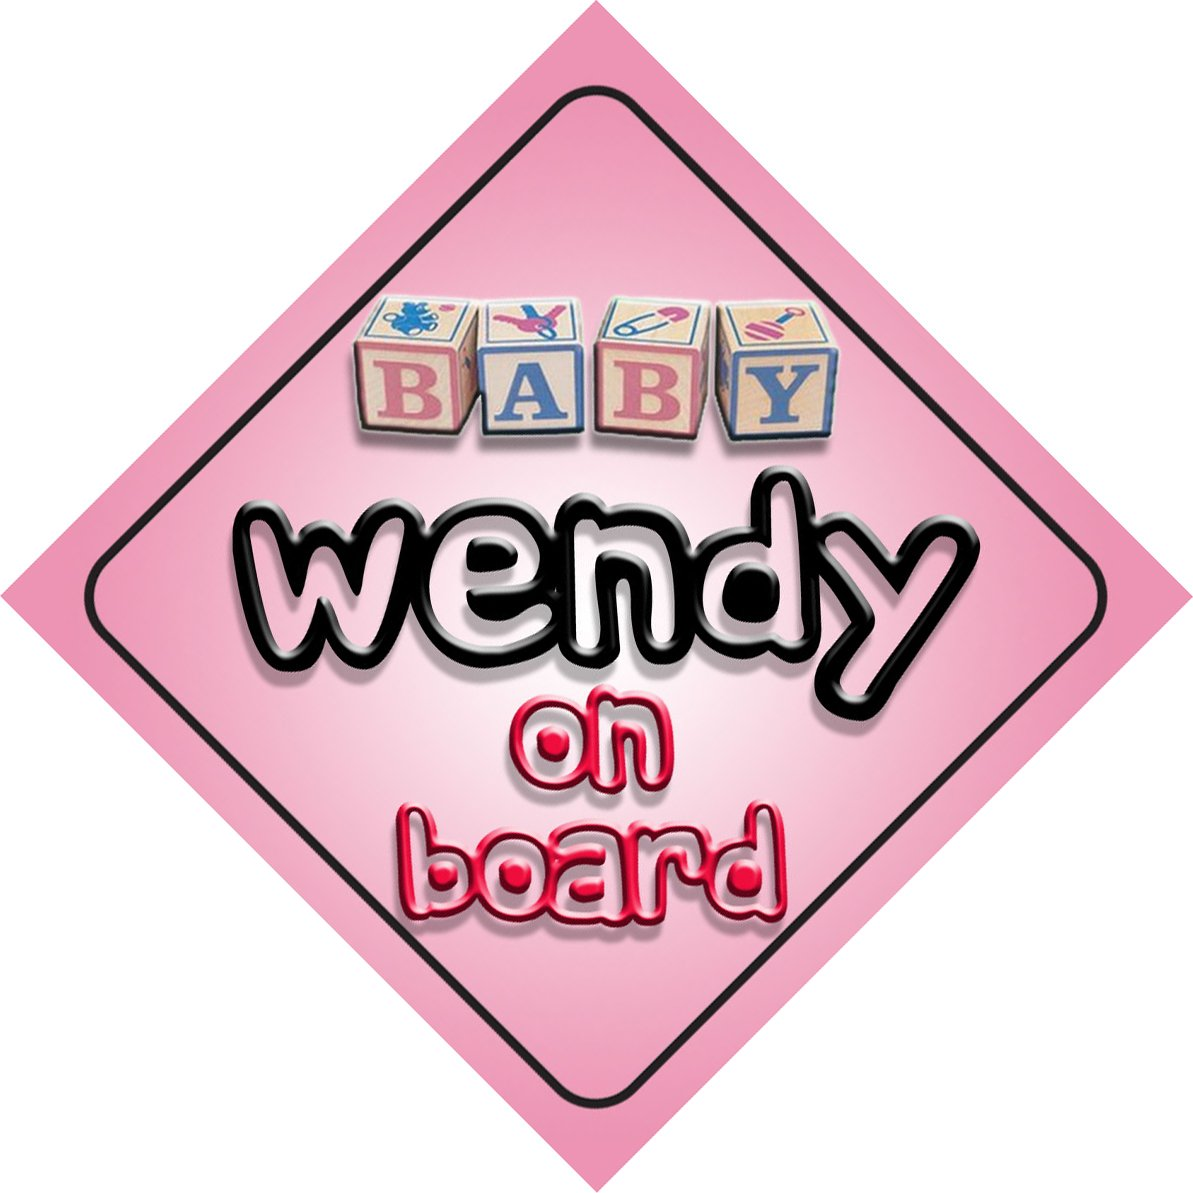 Baby Girl Wendy on board novelty car sign gift / present for new child / newborn baby Quality Goods Ltd